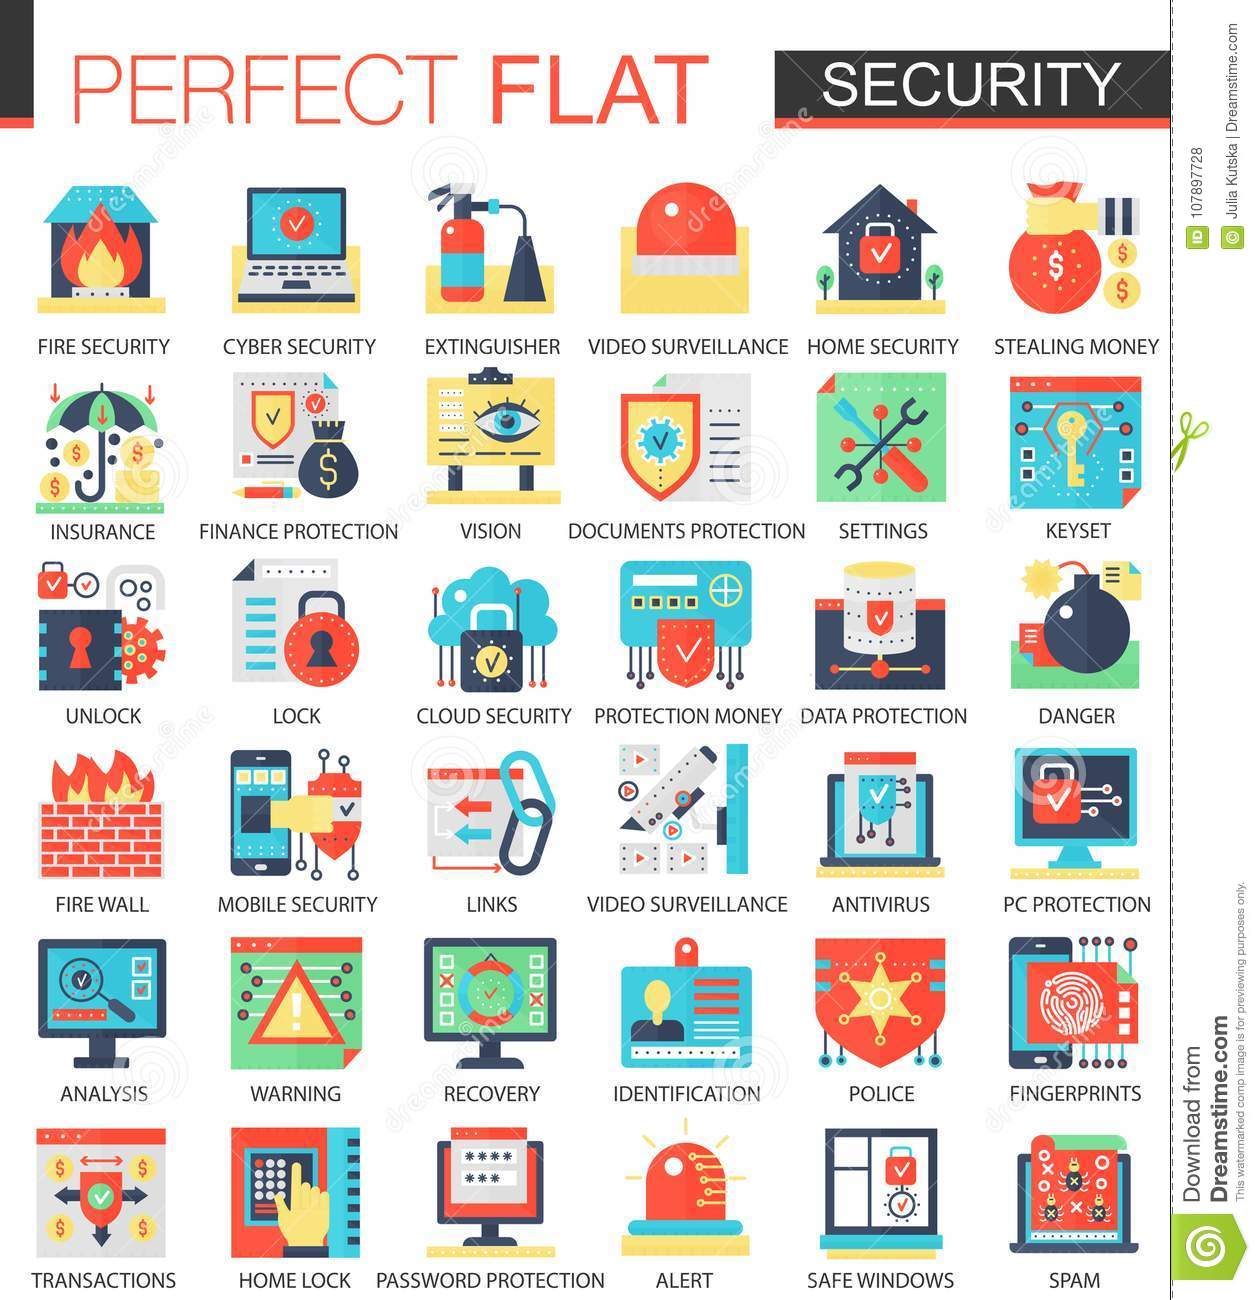 Security and cyber safety technology vector complex flat icon security and cyber safety technology vector complex flat icon concept symbols for web infographic design biocorpaavc Images